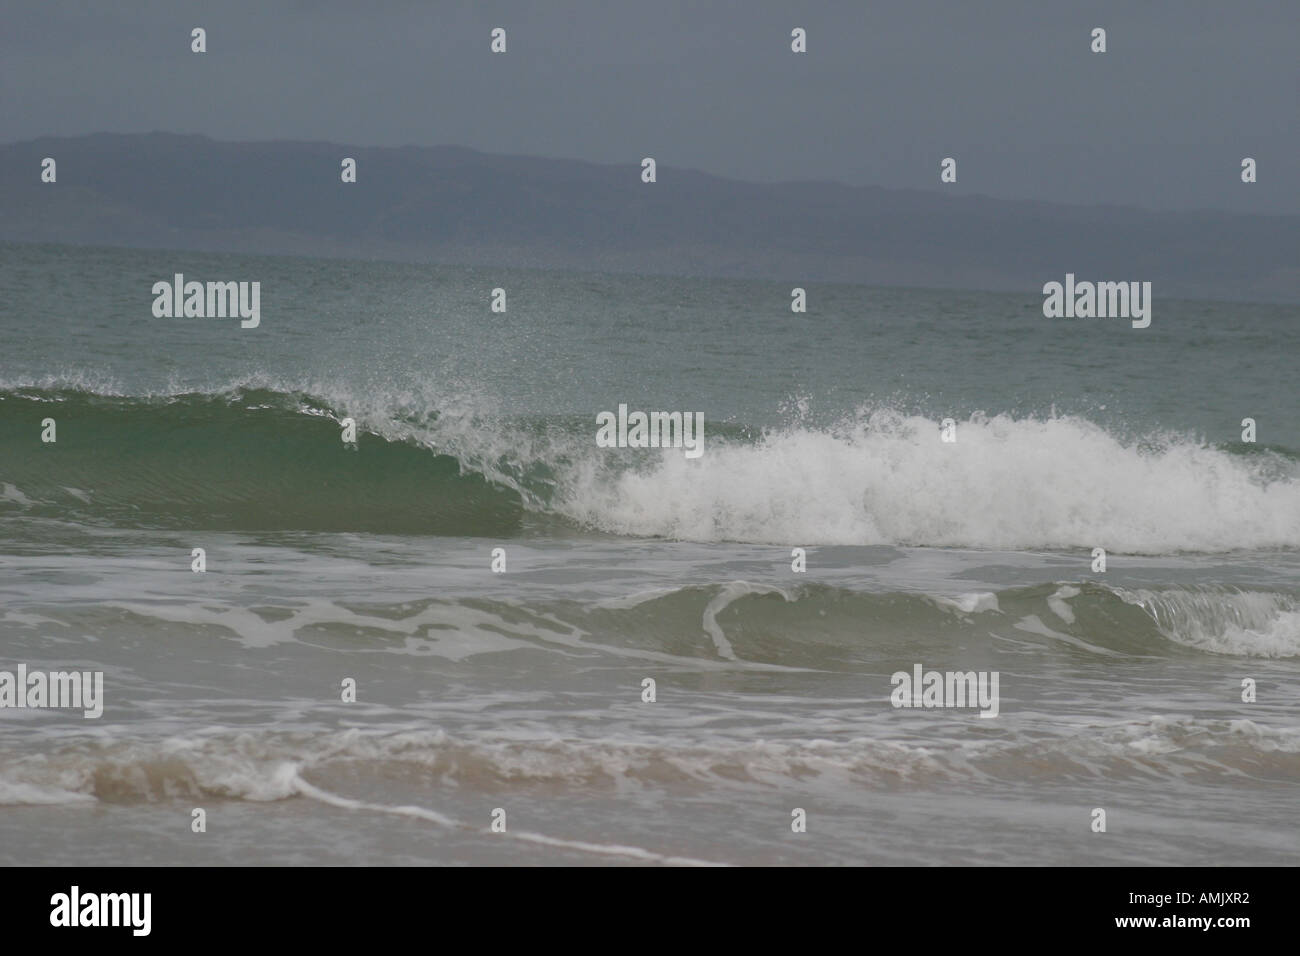 A Stock Photograph of A Wave Approaching in Scotland Stock Photo